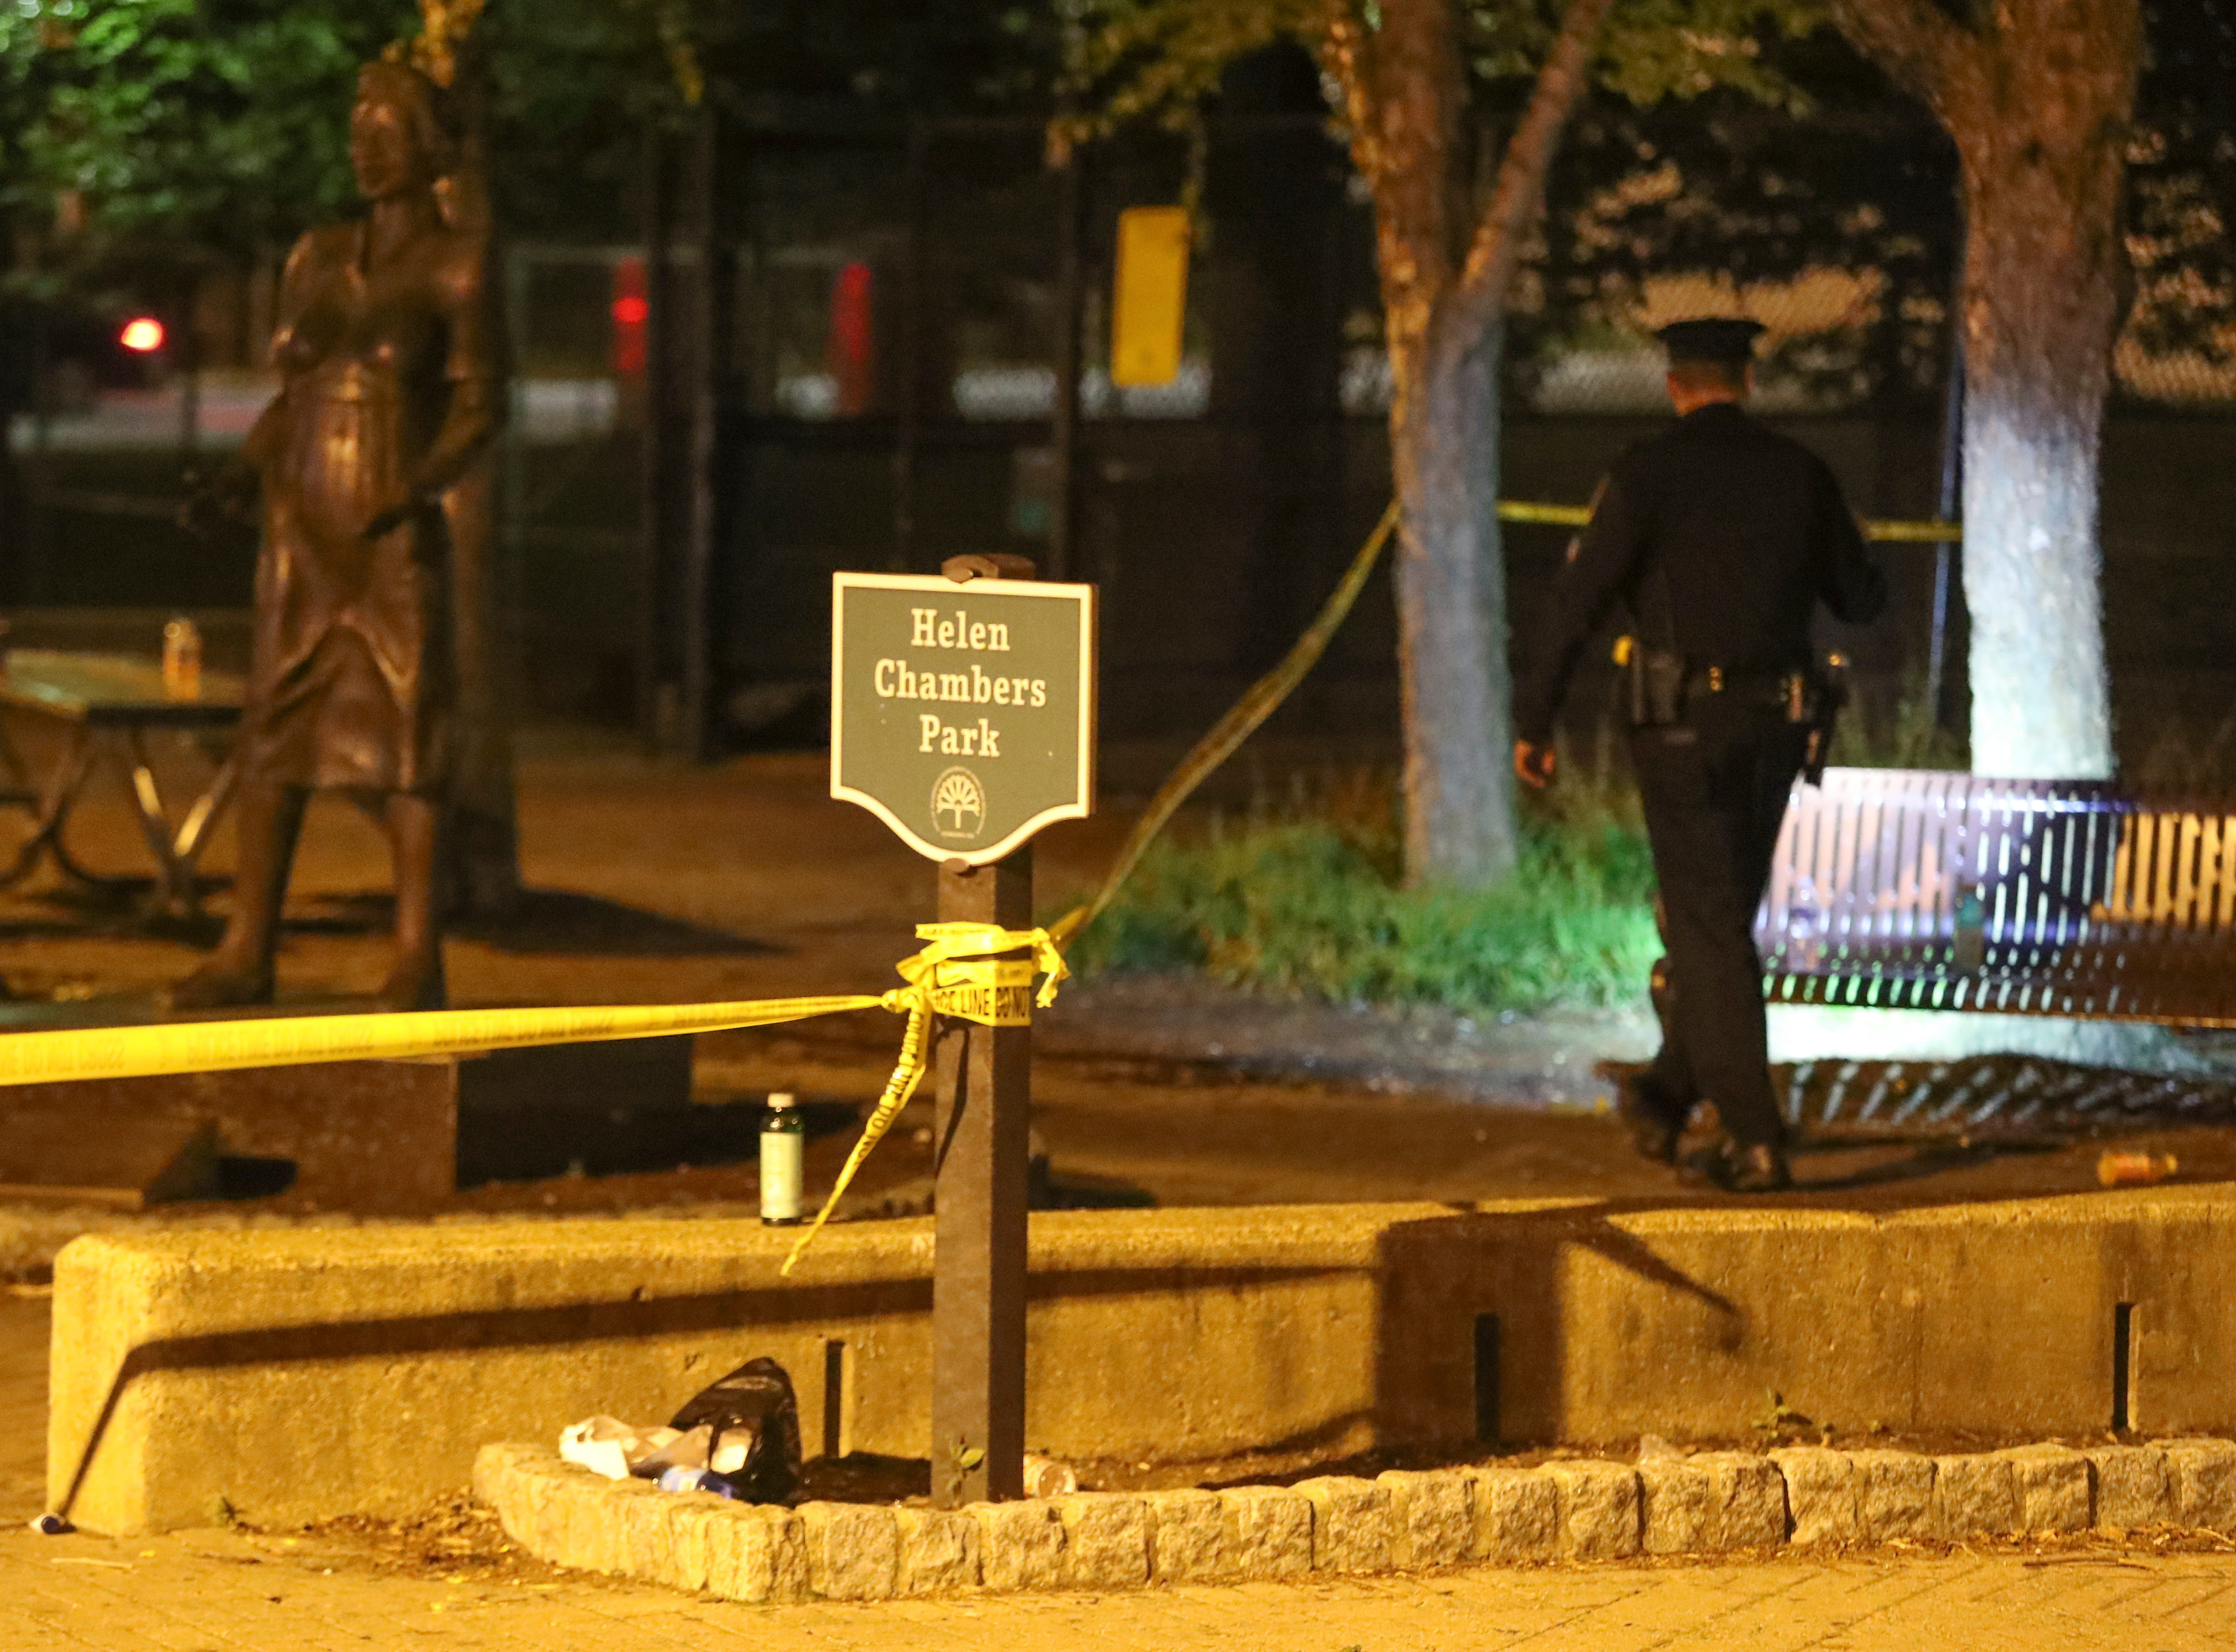 Wilmington police investigate in Helen Chambers Park after a shooting was reported about 10 p.m. Thursday on N. Madison Street. Police had taped off Madison Street from W. 4th Street to W. 7th Street but concentrated in the 600 block in and along the park.